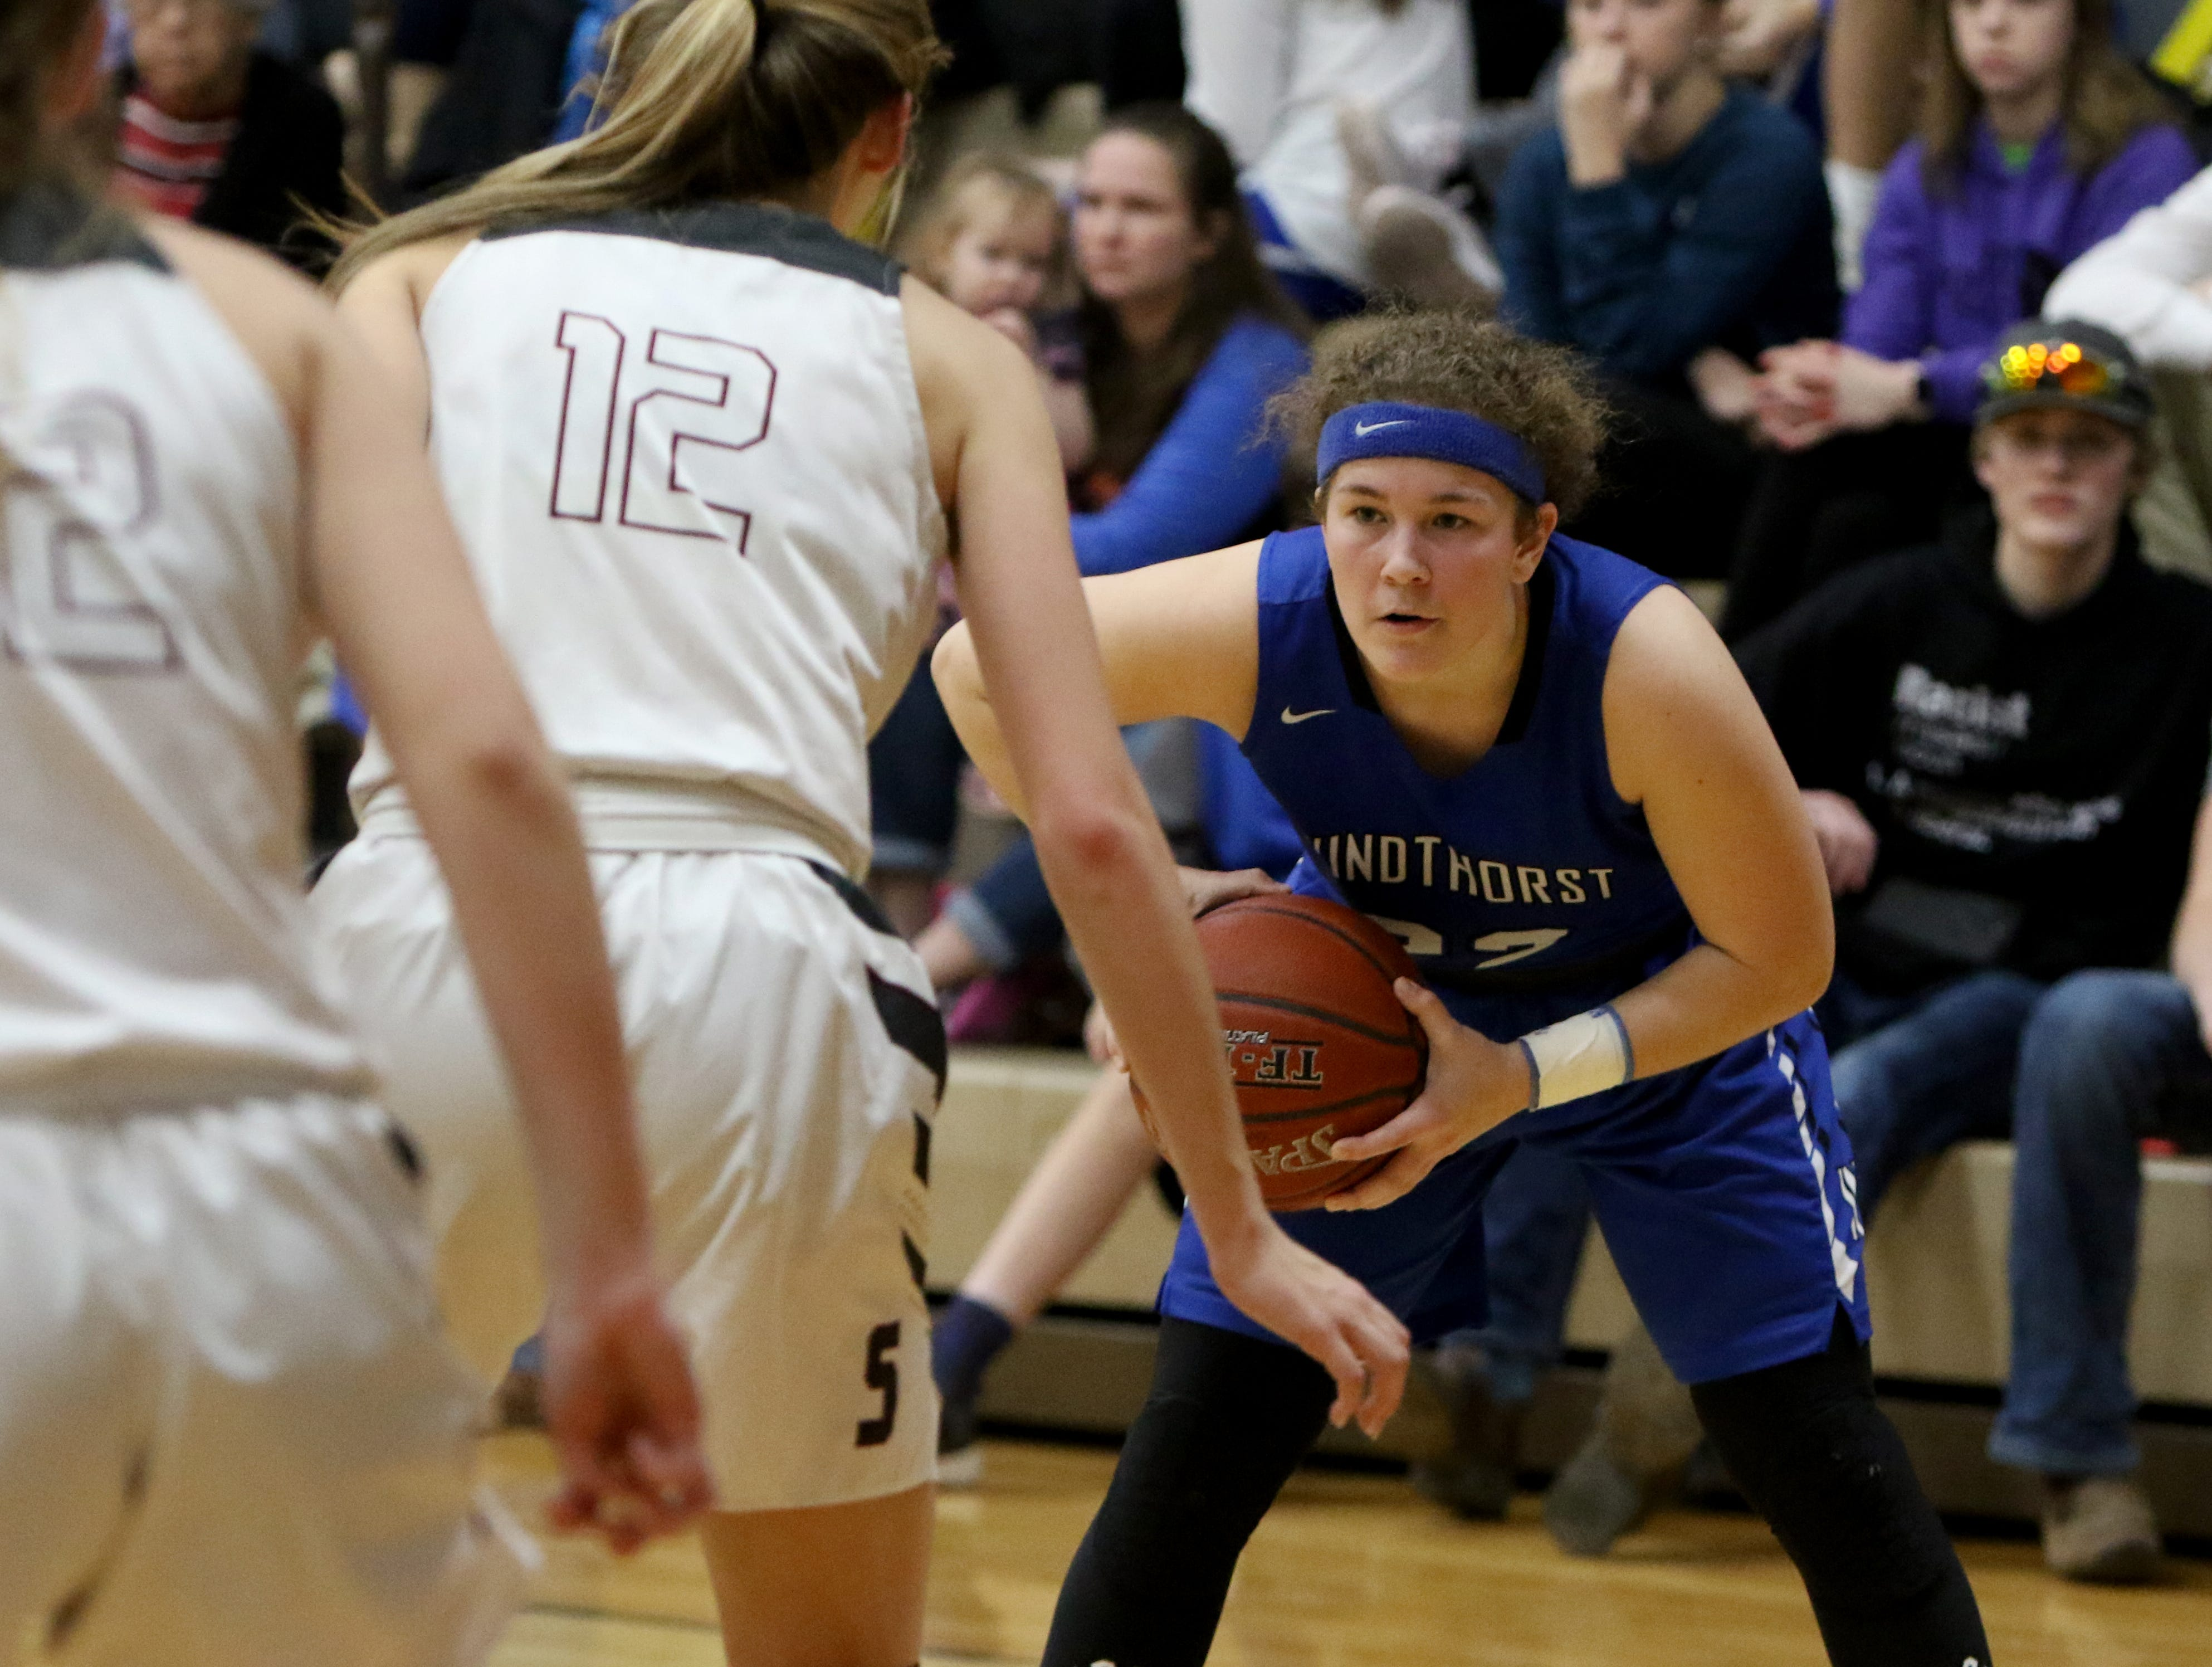 Windthorst's Abby Brown holds the ball while guarded by Seymour's Tess Decker Tuesday, Jan. 8, 2019, in Seymour.